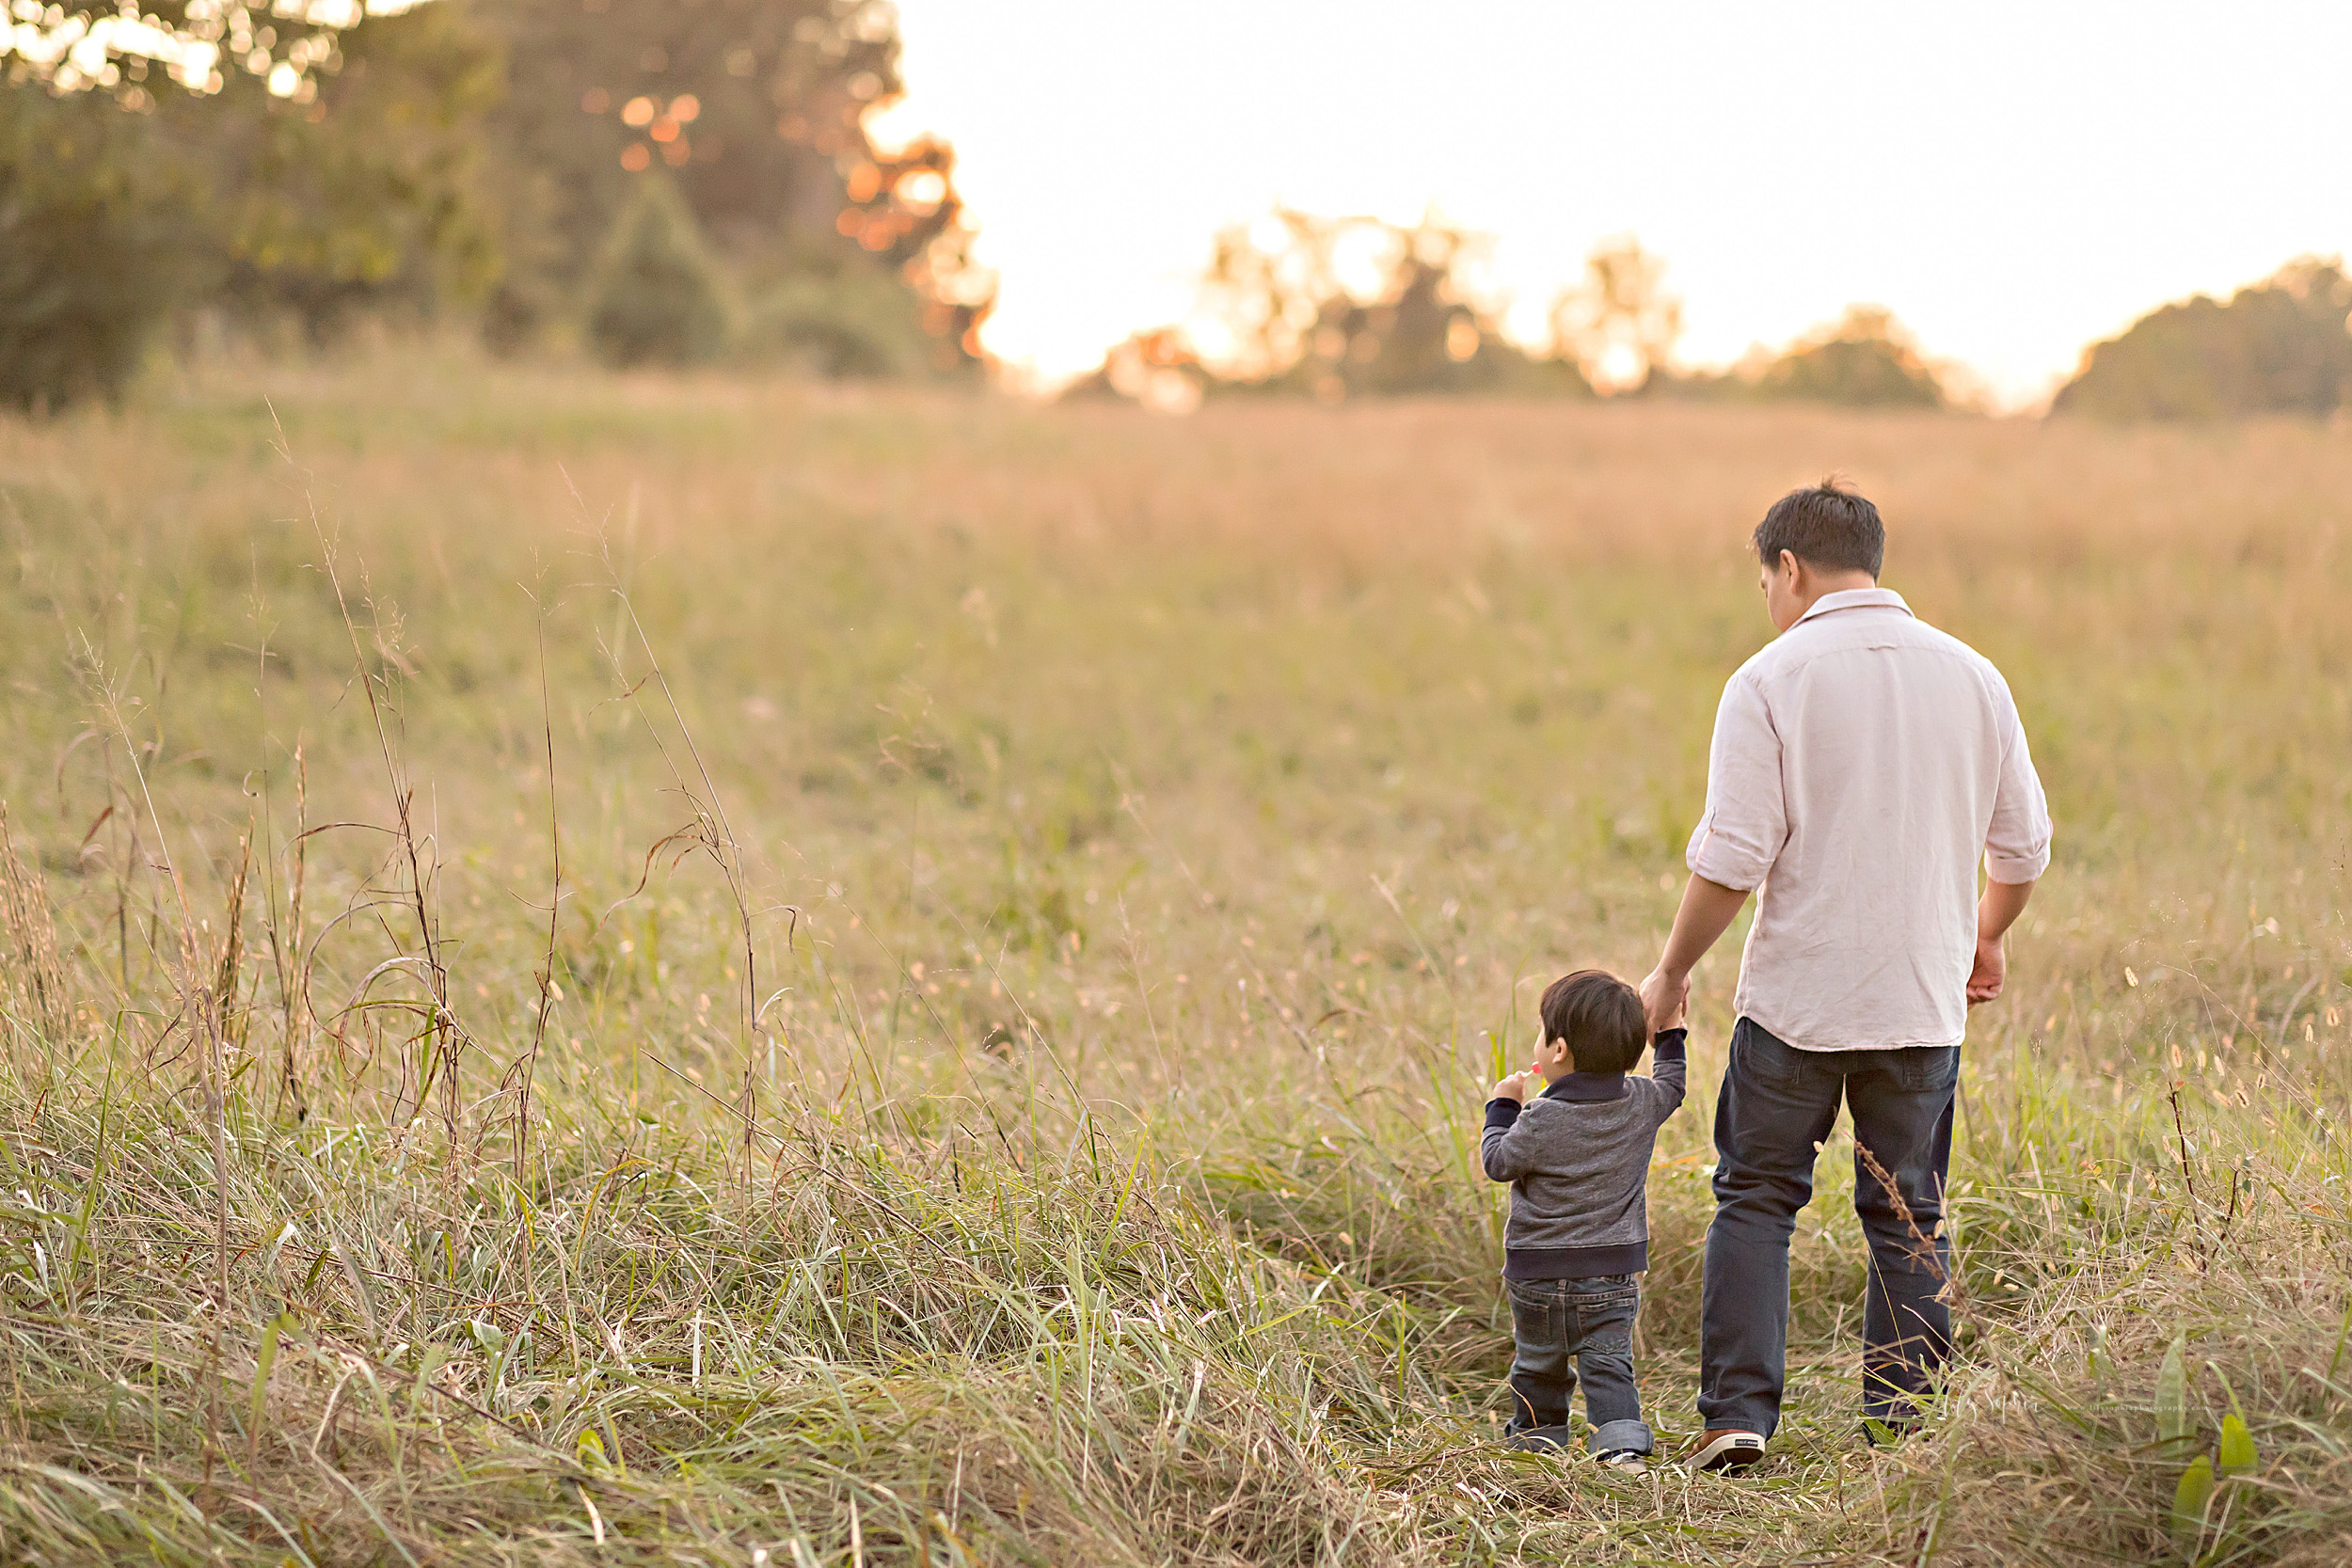 Image of an Asian father and his young son as they walk up a hill in a field at sunset.